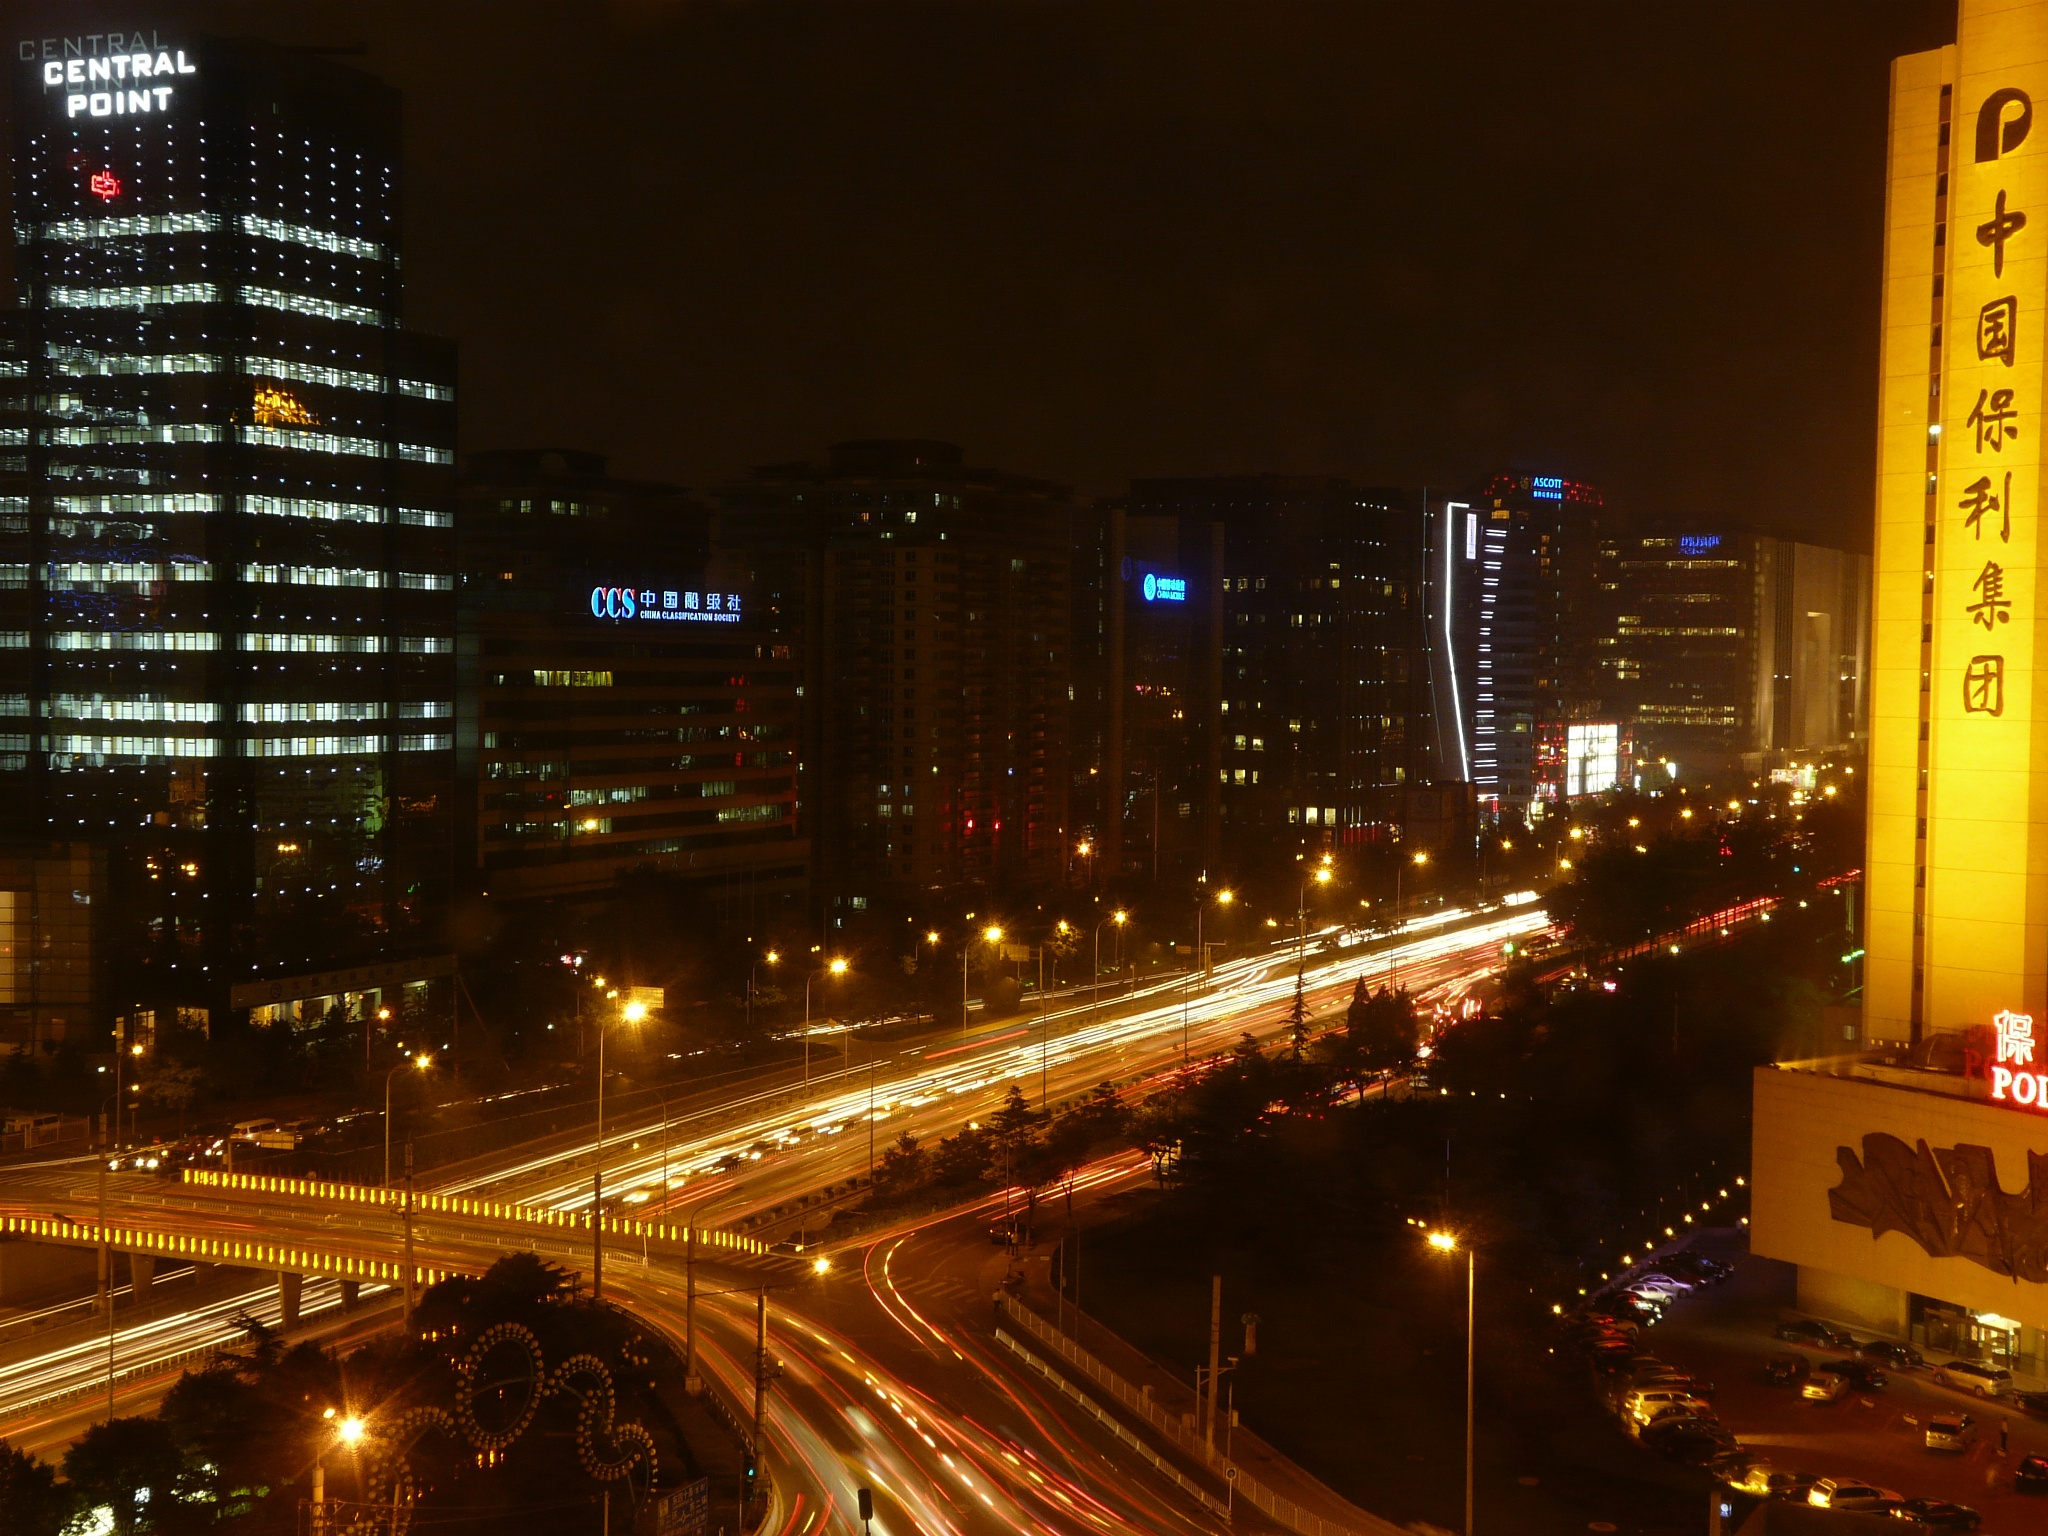 Beijing at night by dean.russell.3551